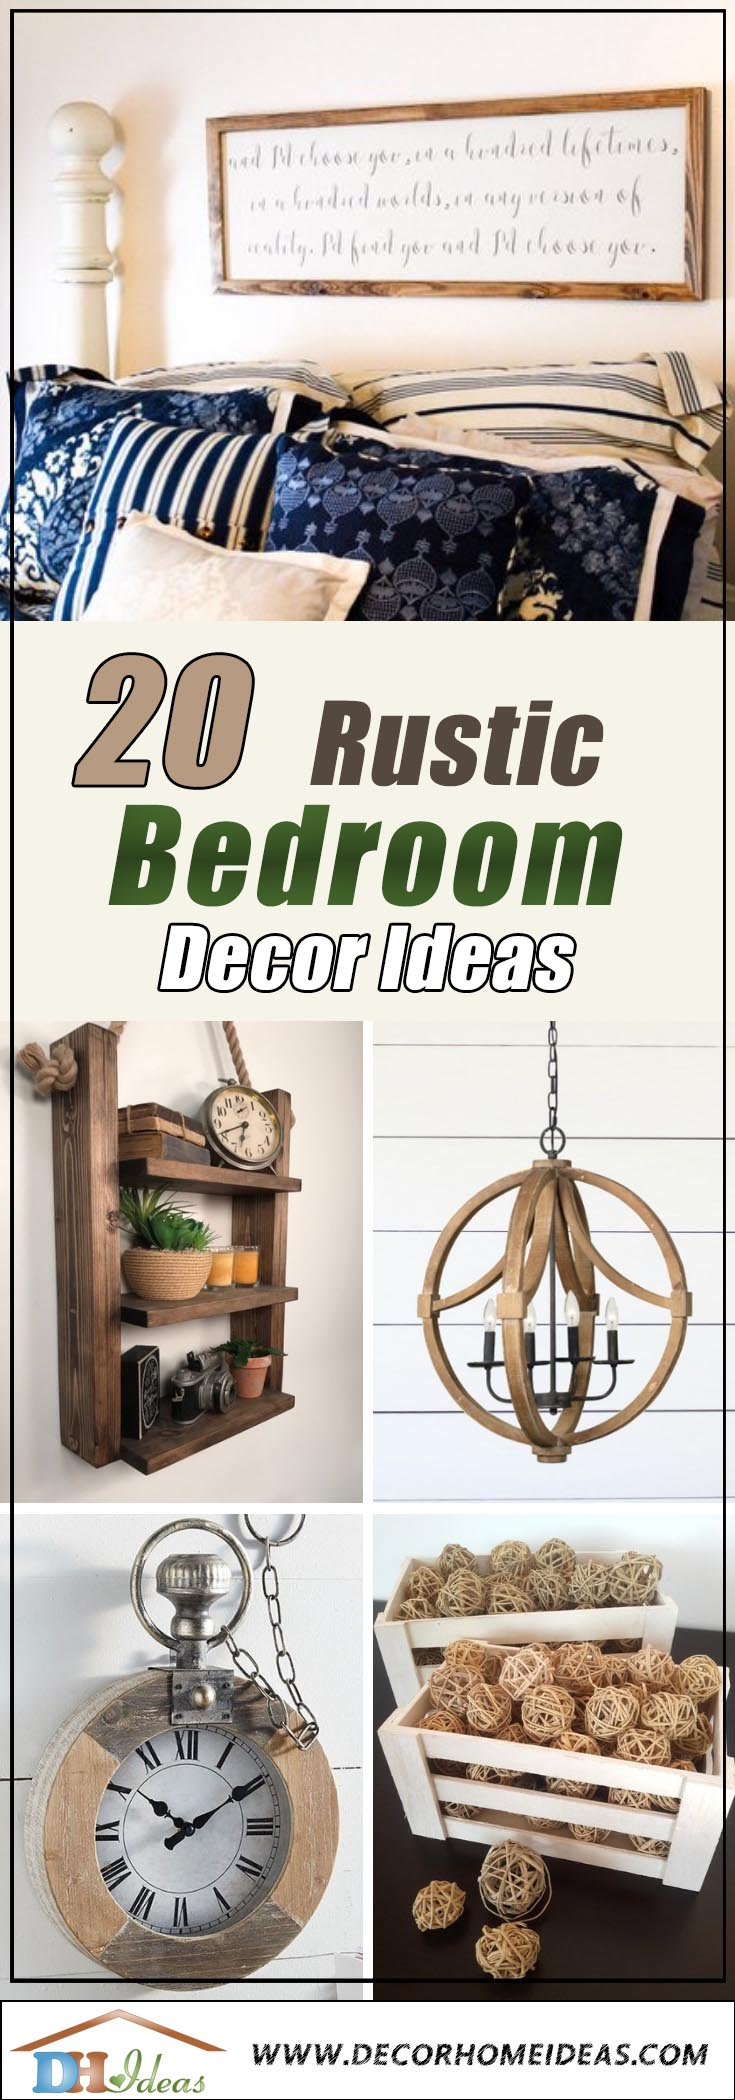 Rustic Bedroom Decor #rusticbedroom #rustic #bedroom #farmhouse #decorhomeideas